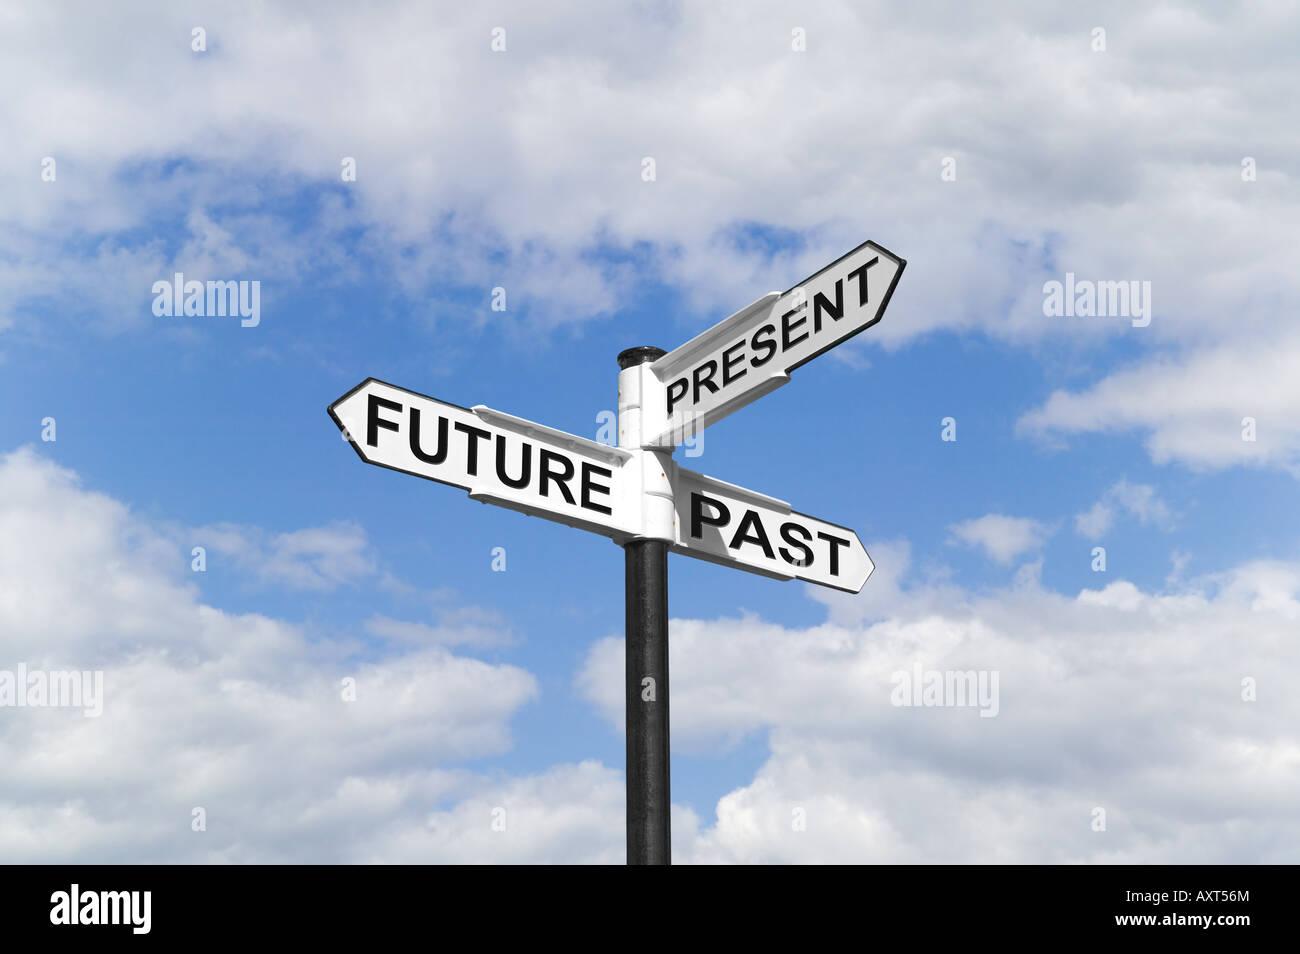 Concept image of a Future Past Present signpost against a blue cloudy sky - Stock Image